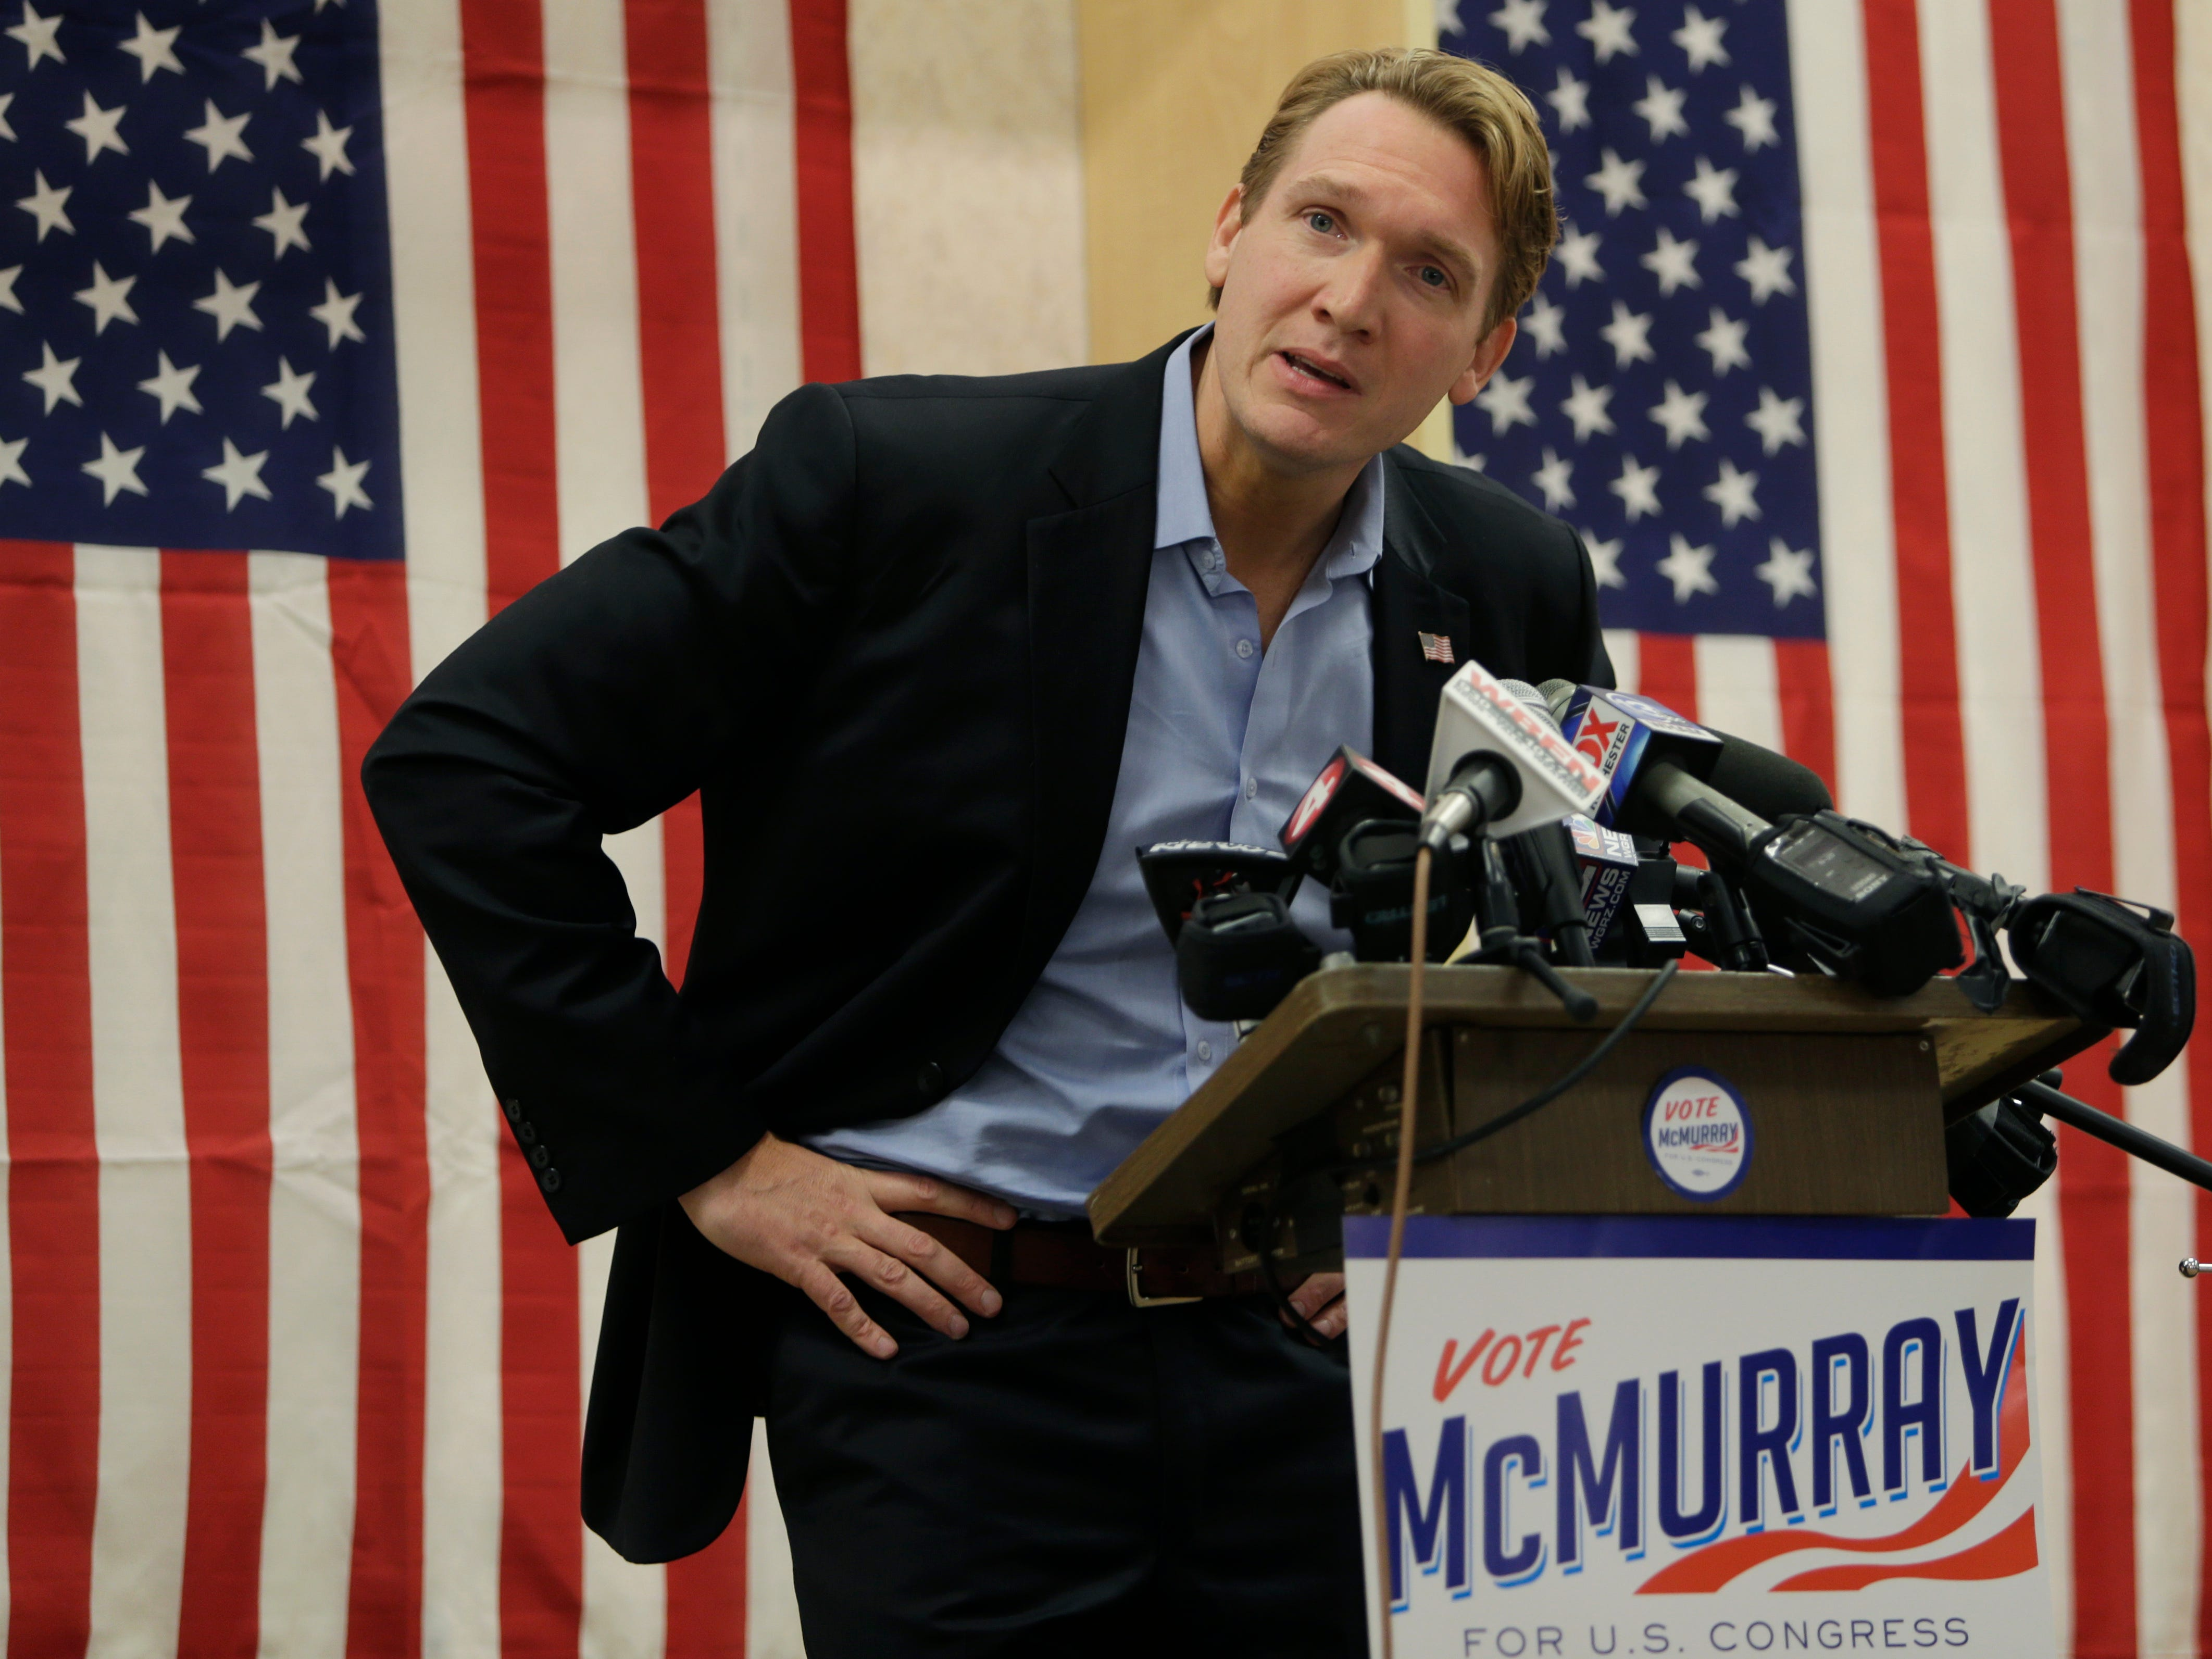 Democratic Congressional candidate Nate McMurray makes his concession speech following his loss to Republican incumbent Chris Collins who was re-elected to New York's 27th Congressional District, Tuesday, Nov. 6, 2018, in Hamburg N.Y.